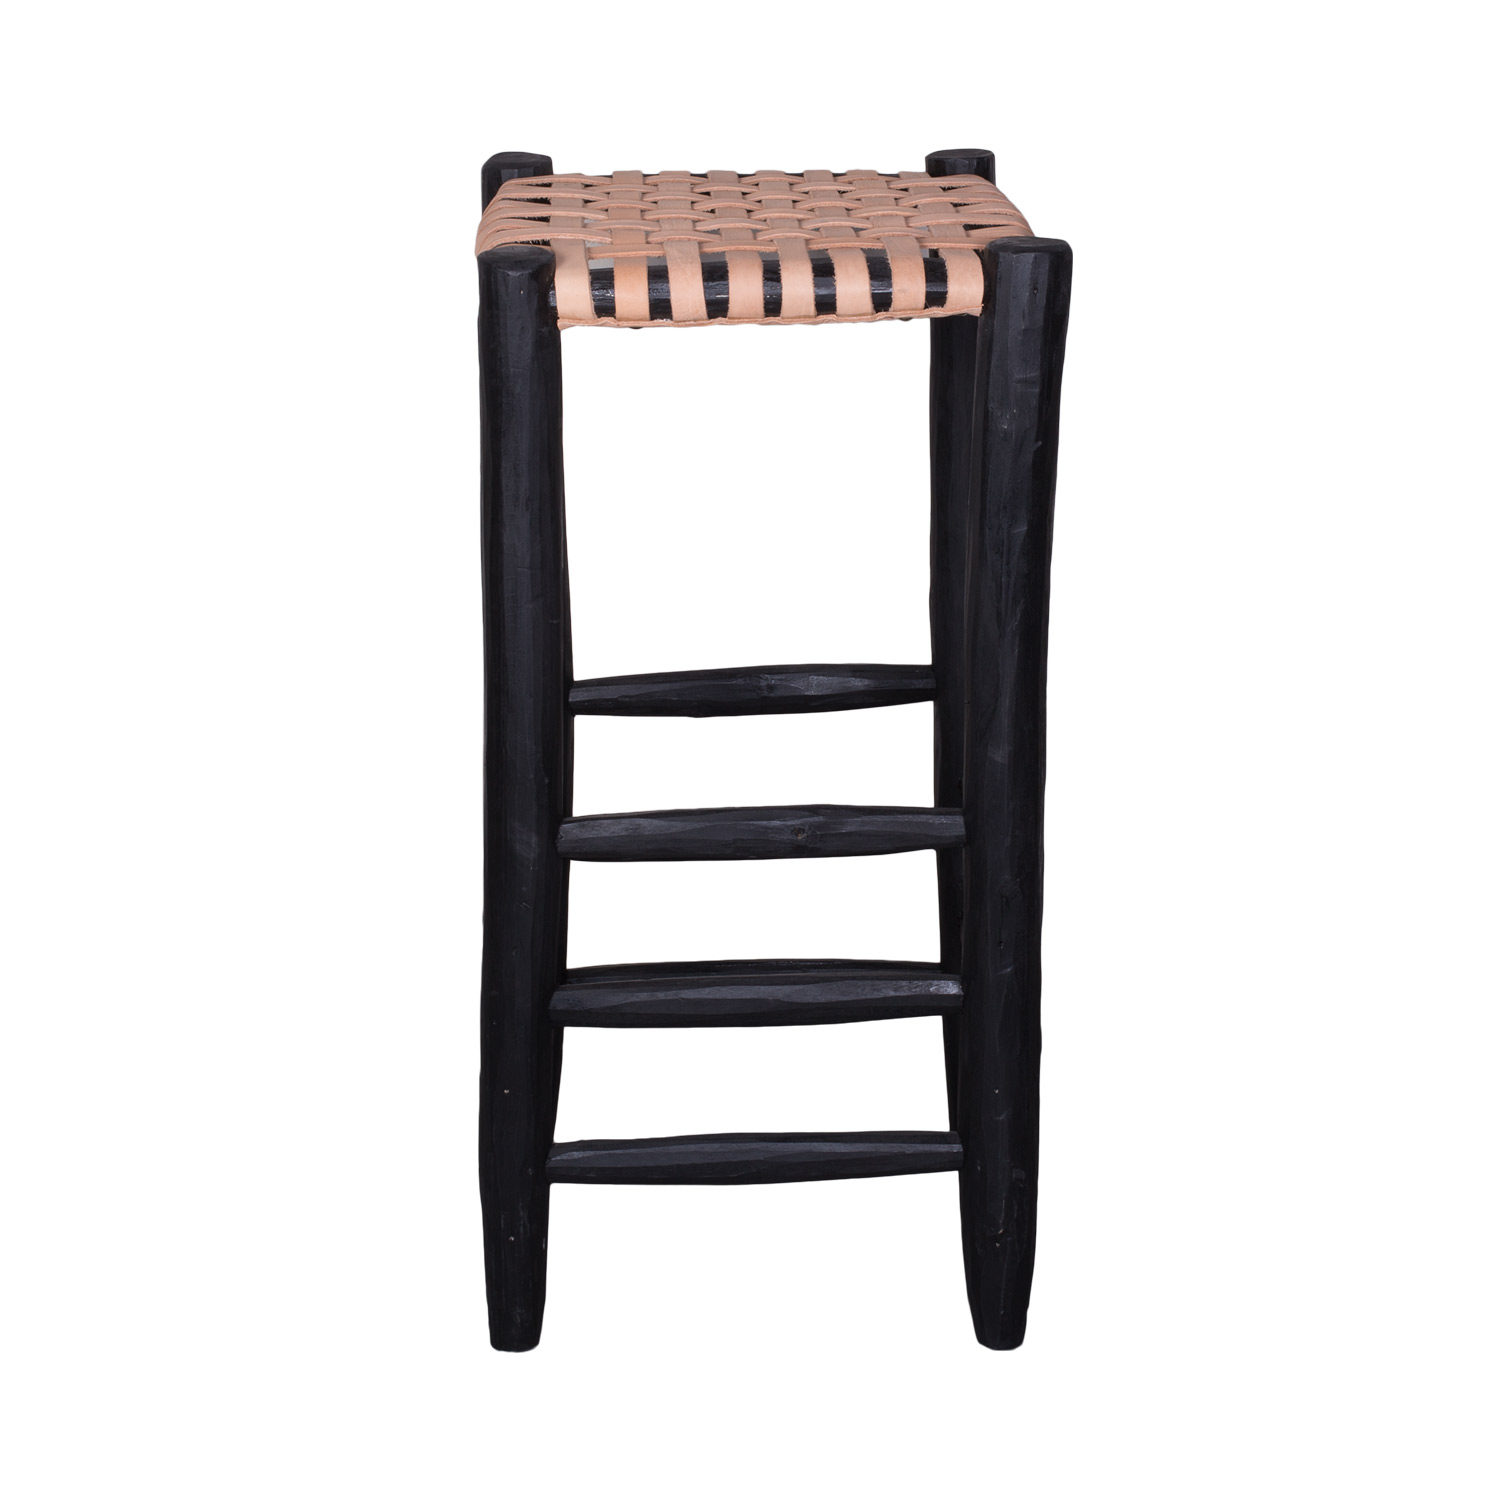 Awe Inspiring Barstool Black With Natural Leather Seating Household Hardware Gamerscity Chair Design For Home Gamerscityorg